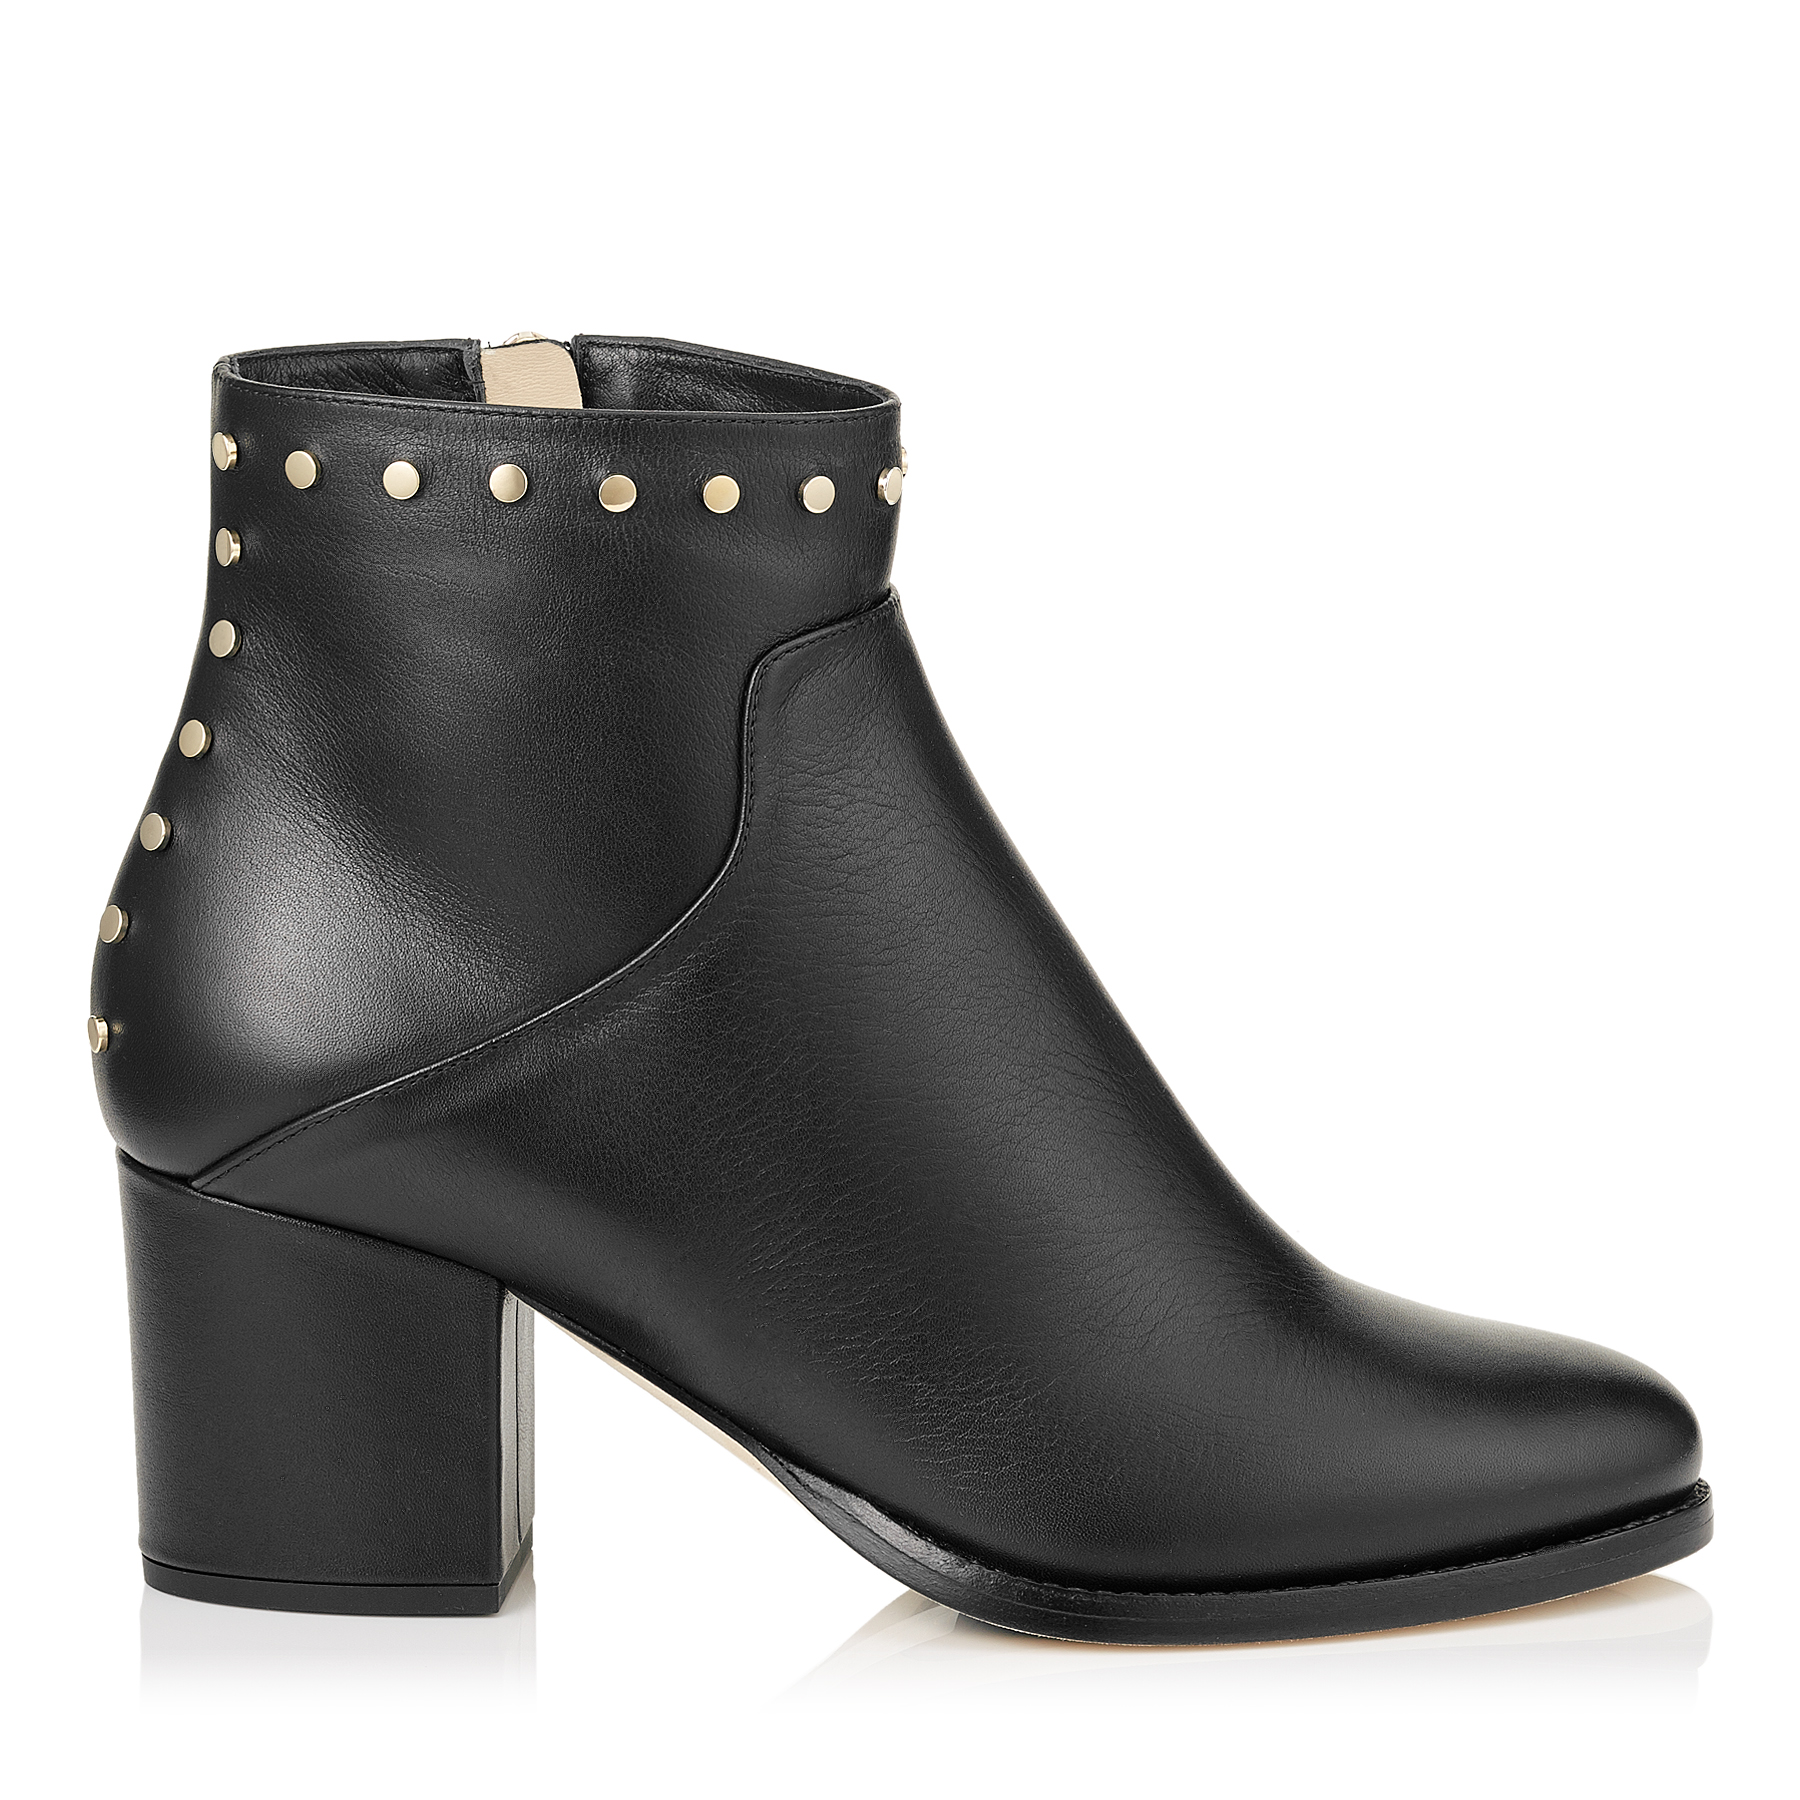 MELVIN 65 Black Smooth Leather Ankle Boots with Studs Trim by Jimmy Choo